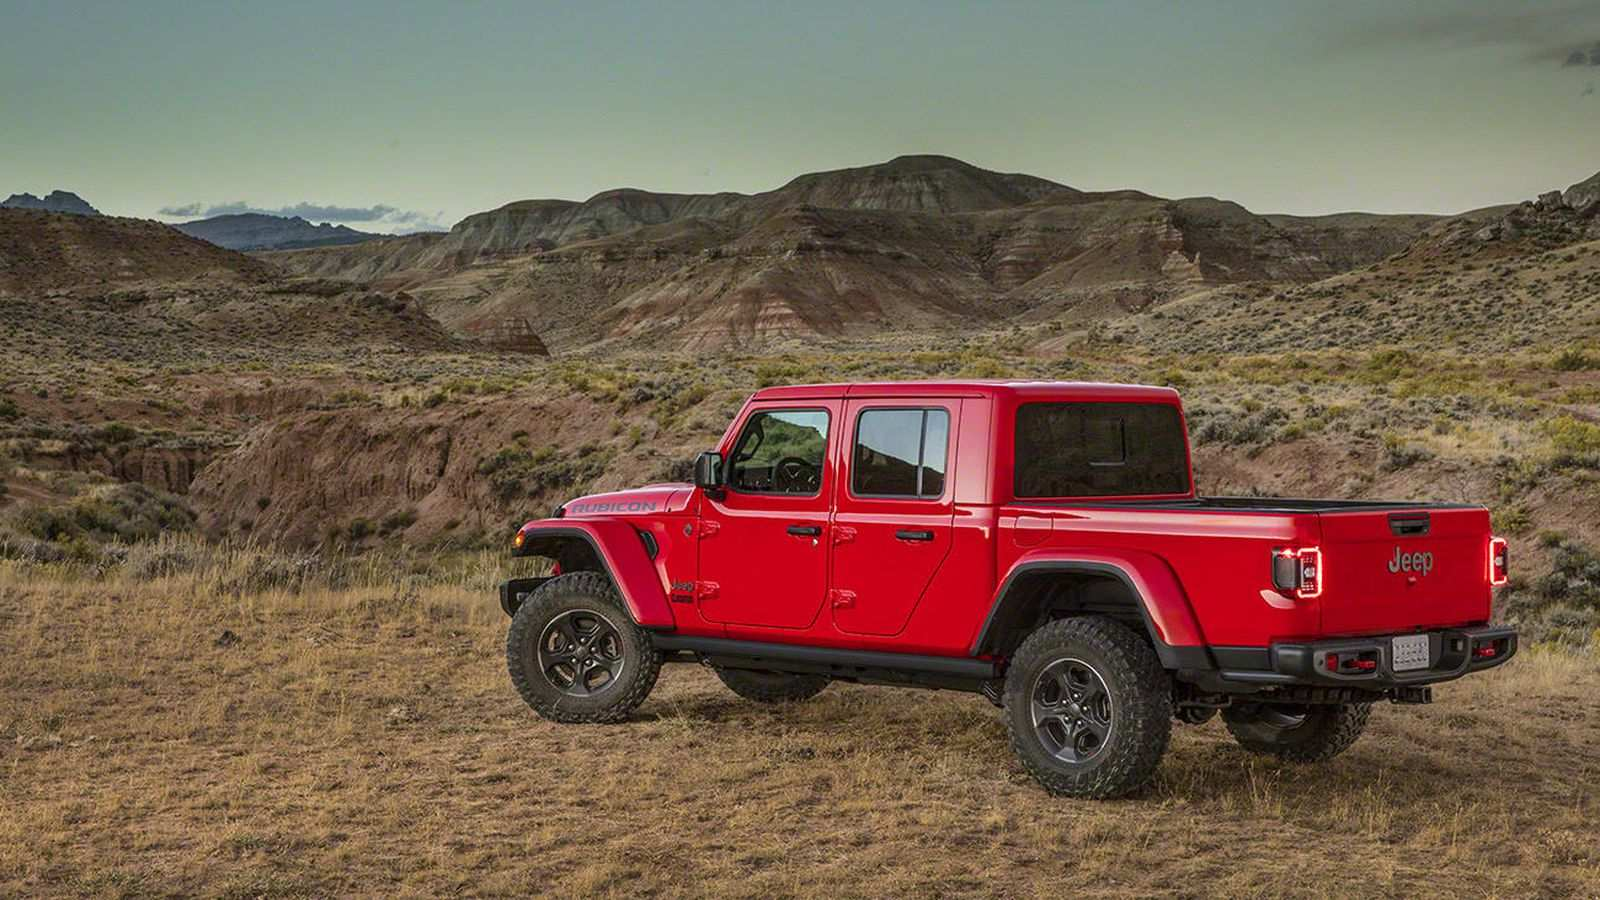 22 Gallery of Jeep Wrangler Pickup 2020 Performance for Jeep Wrangler Pickup 2020